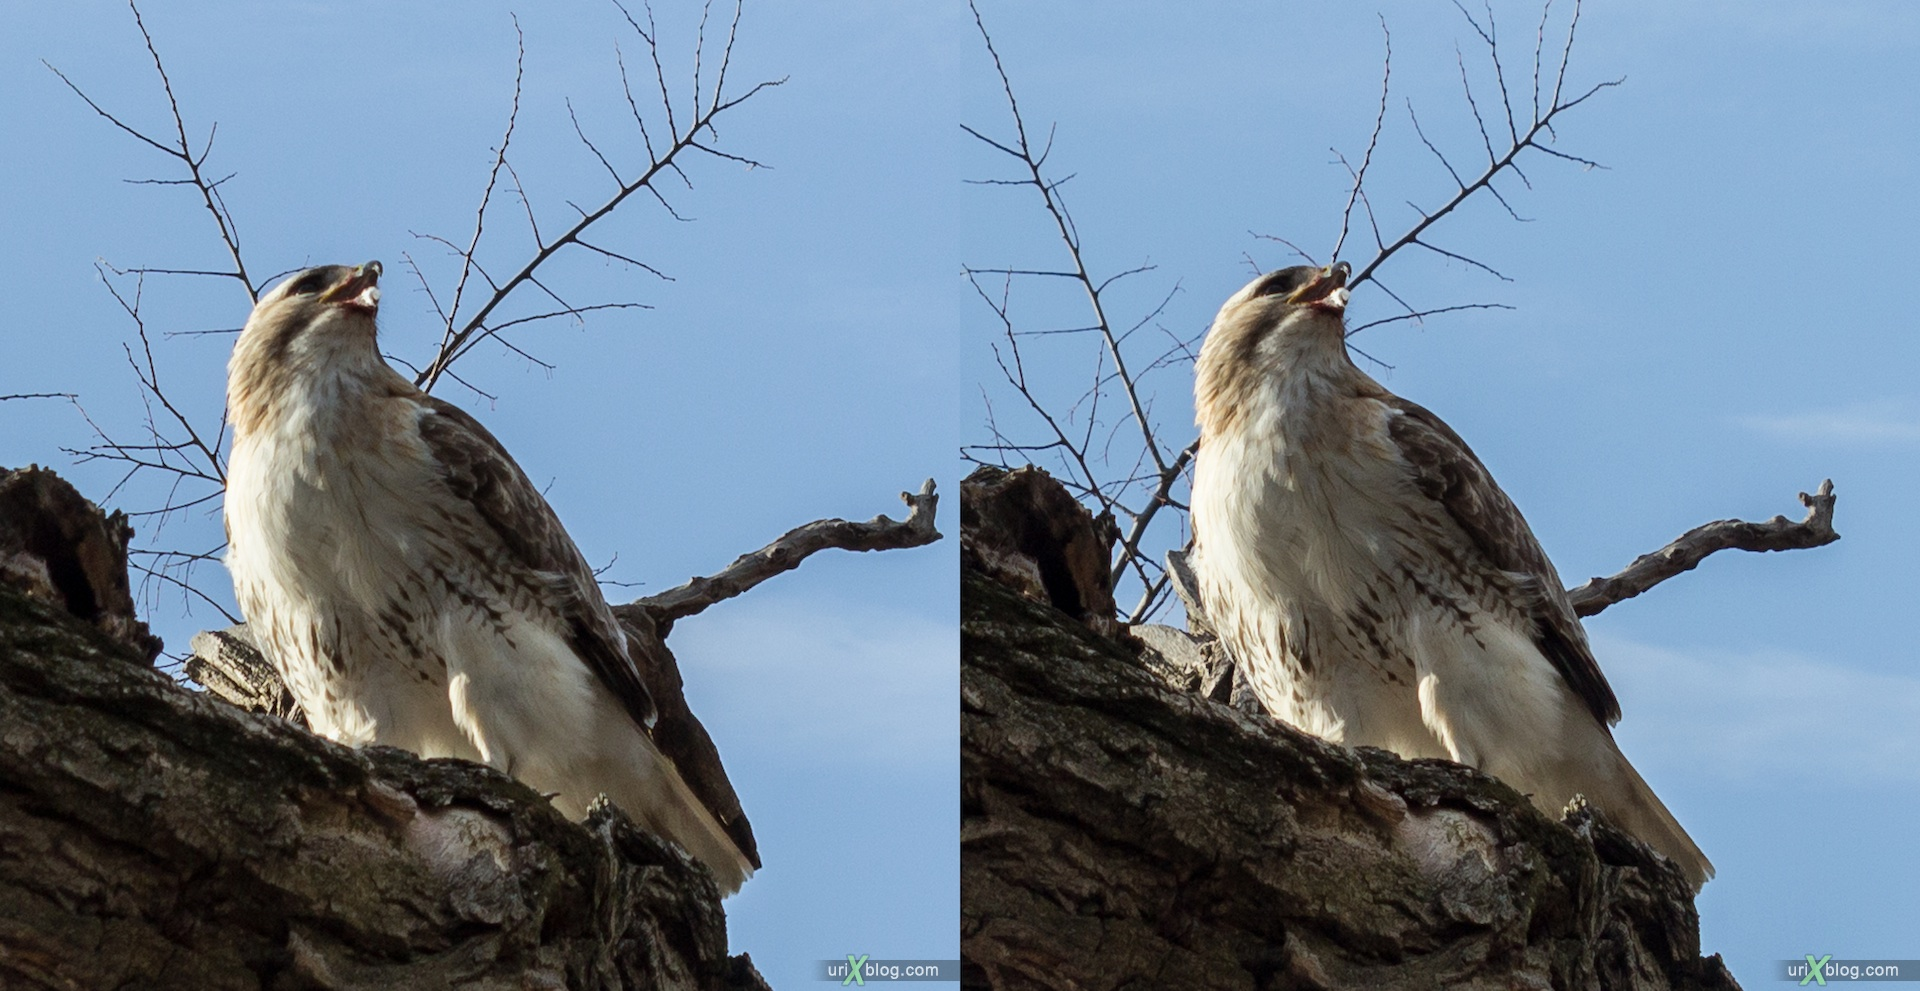 2013, red-tailed hawk, eagle, bird, NYC, New York, Manhattan, USA, 3D, stereo pair, cross-eyed, crossview, cross view stereo pair, stereoscopic